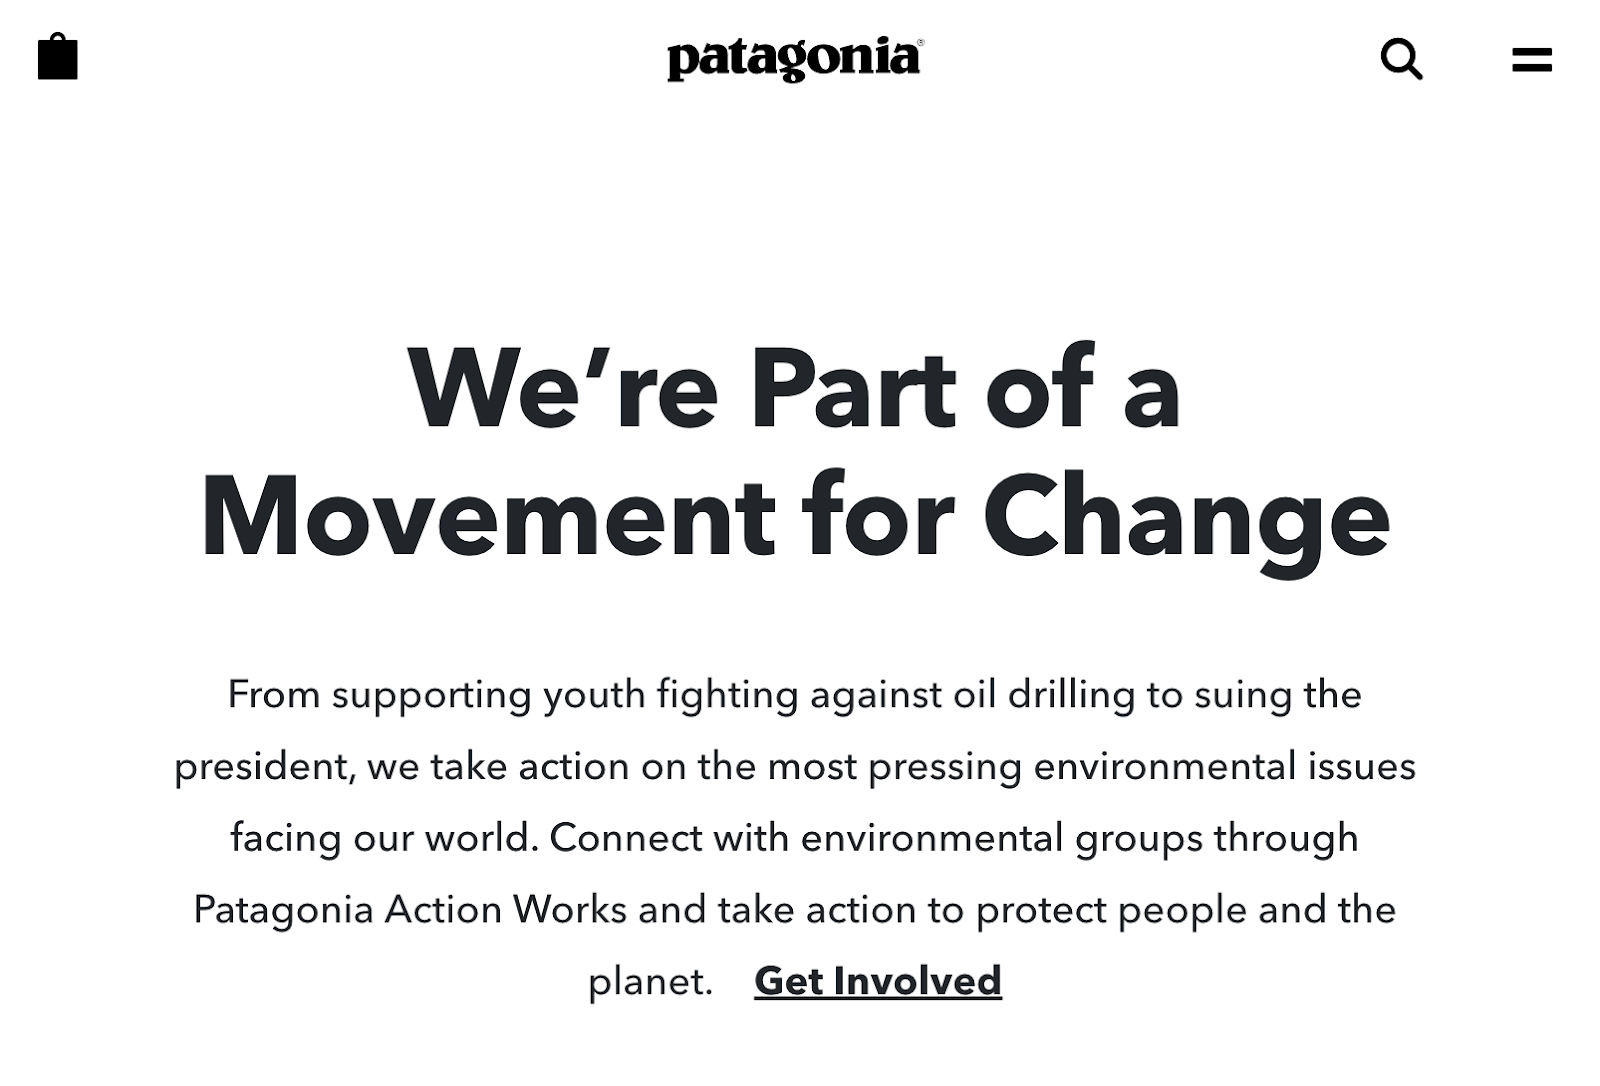 Patagonia challenges category conventions by fighting climate change